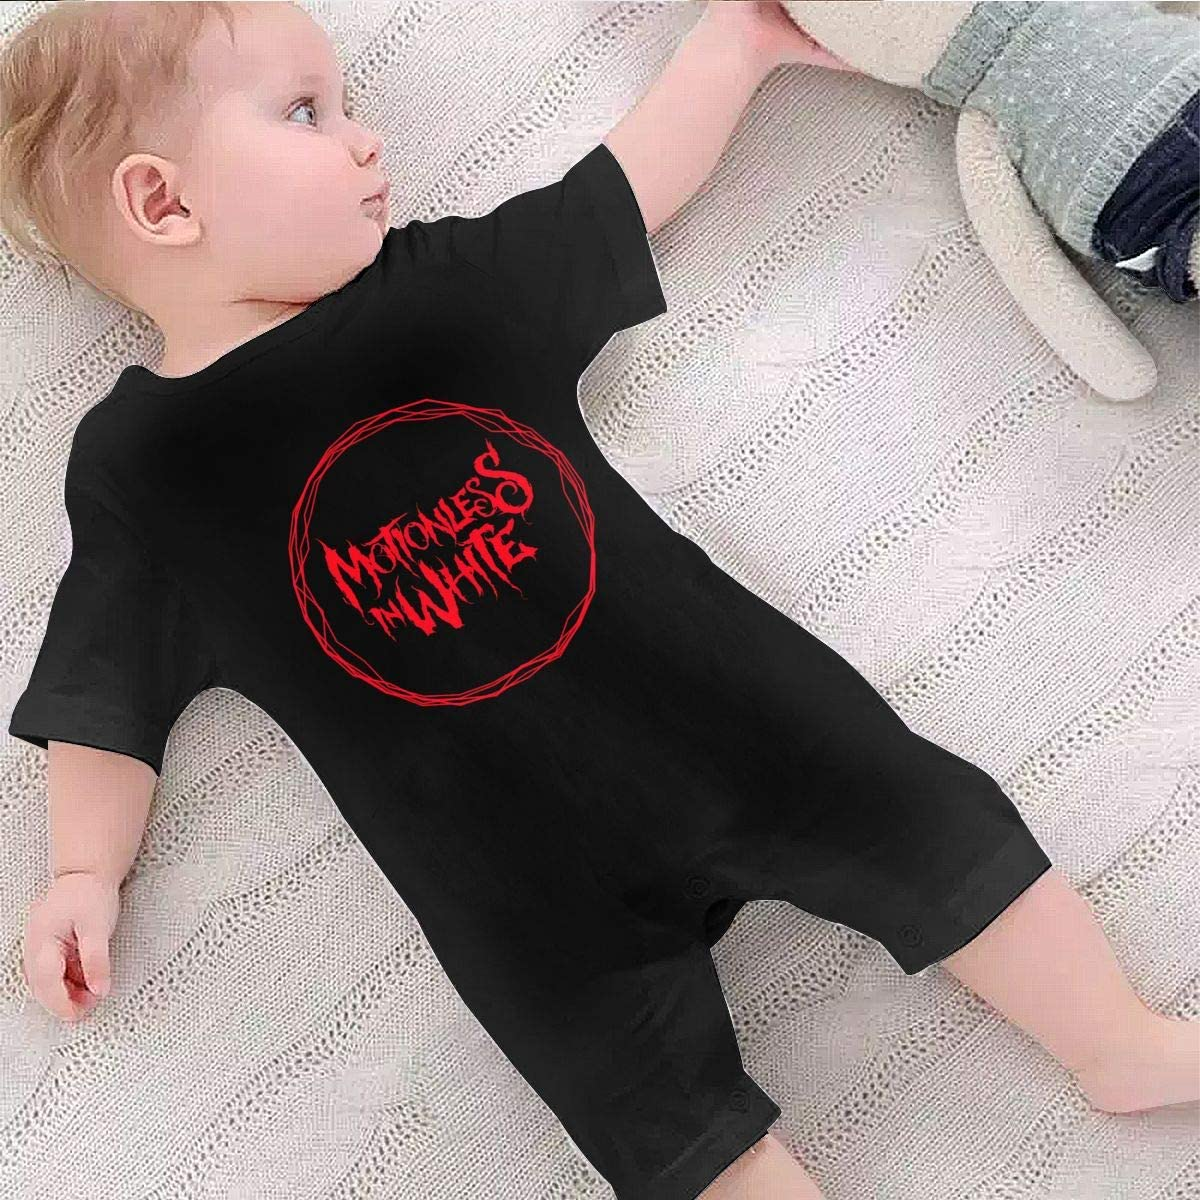 Motionless in White 1-24 Months Boy Girl Baby Short Sleeve Creeper Jumpsuit 6 Months Black